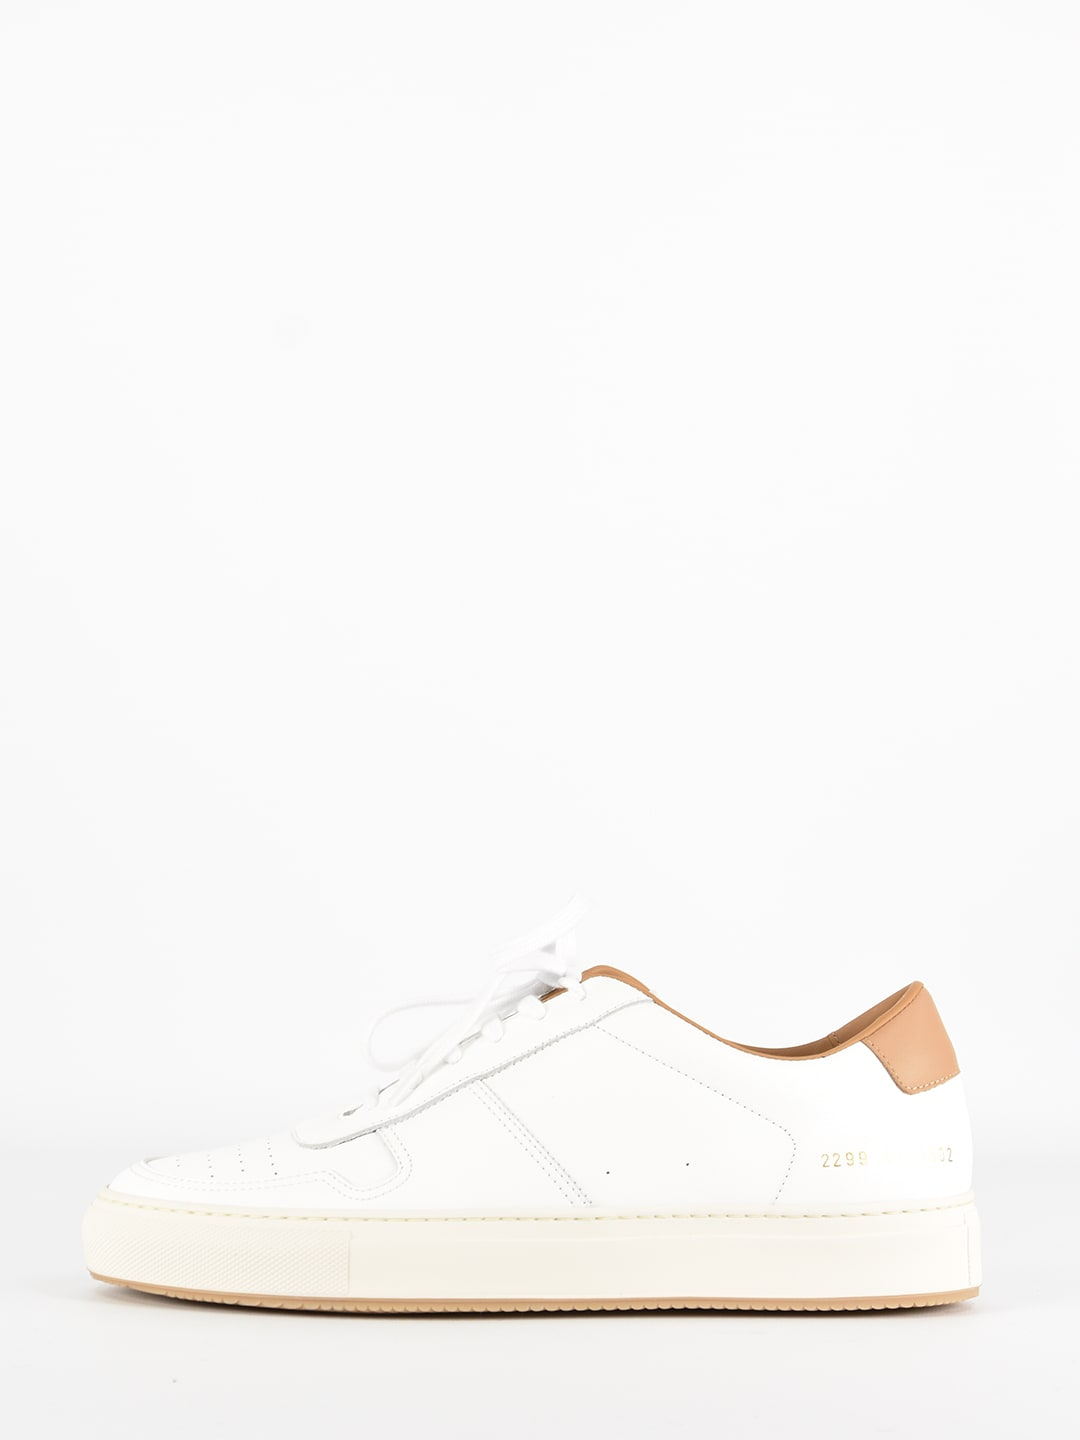 Common Projects BBALL 90 SNEAKER